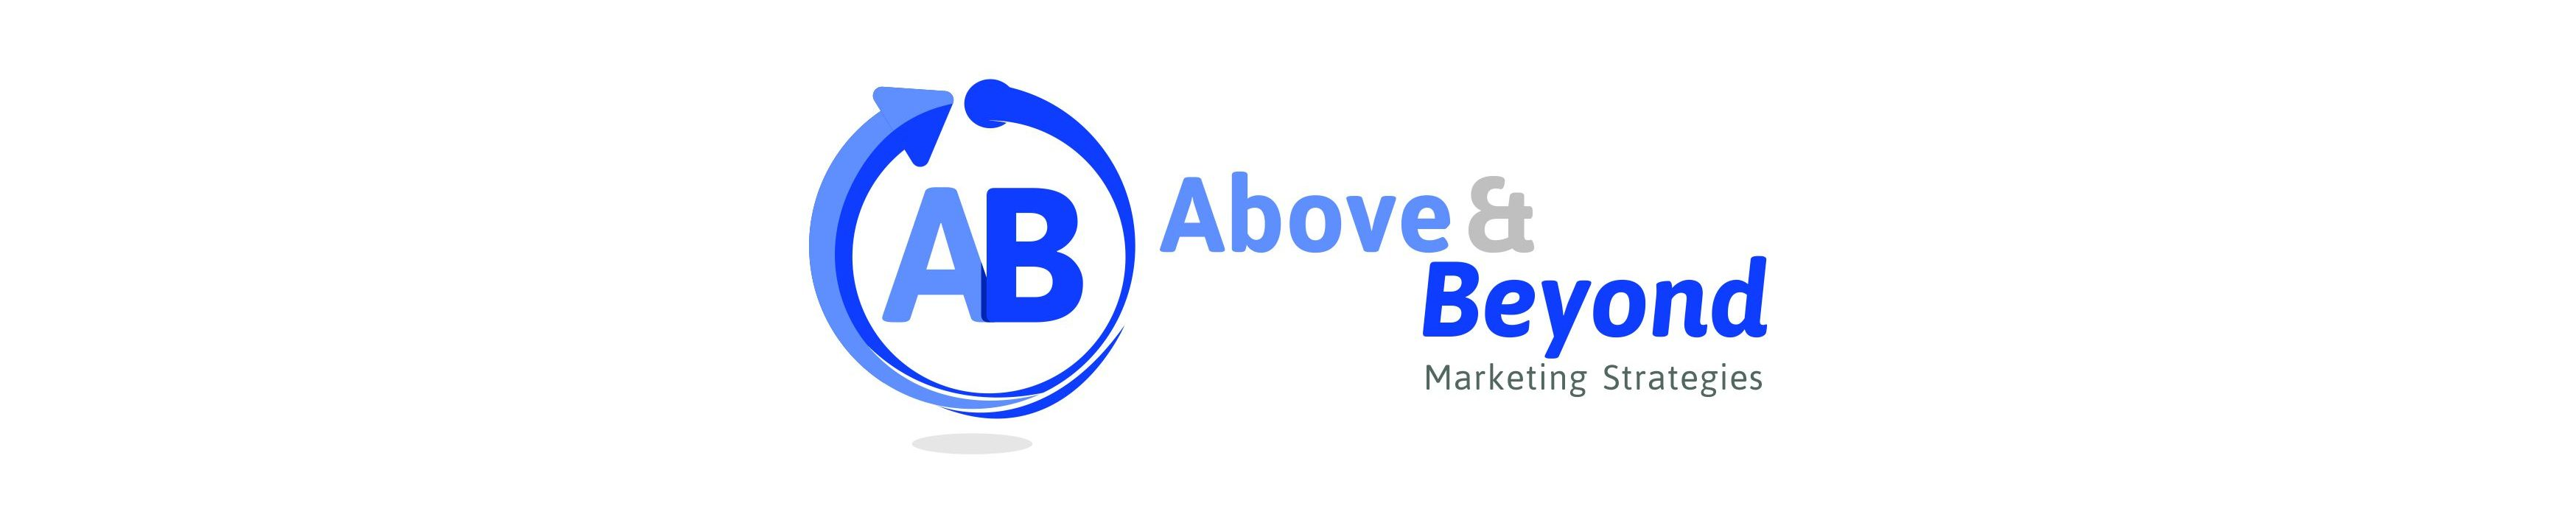 Above and Beyond Marketing Strategies